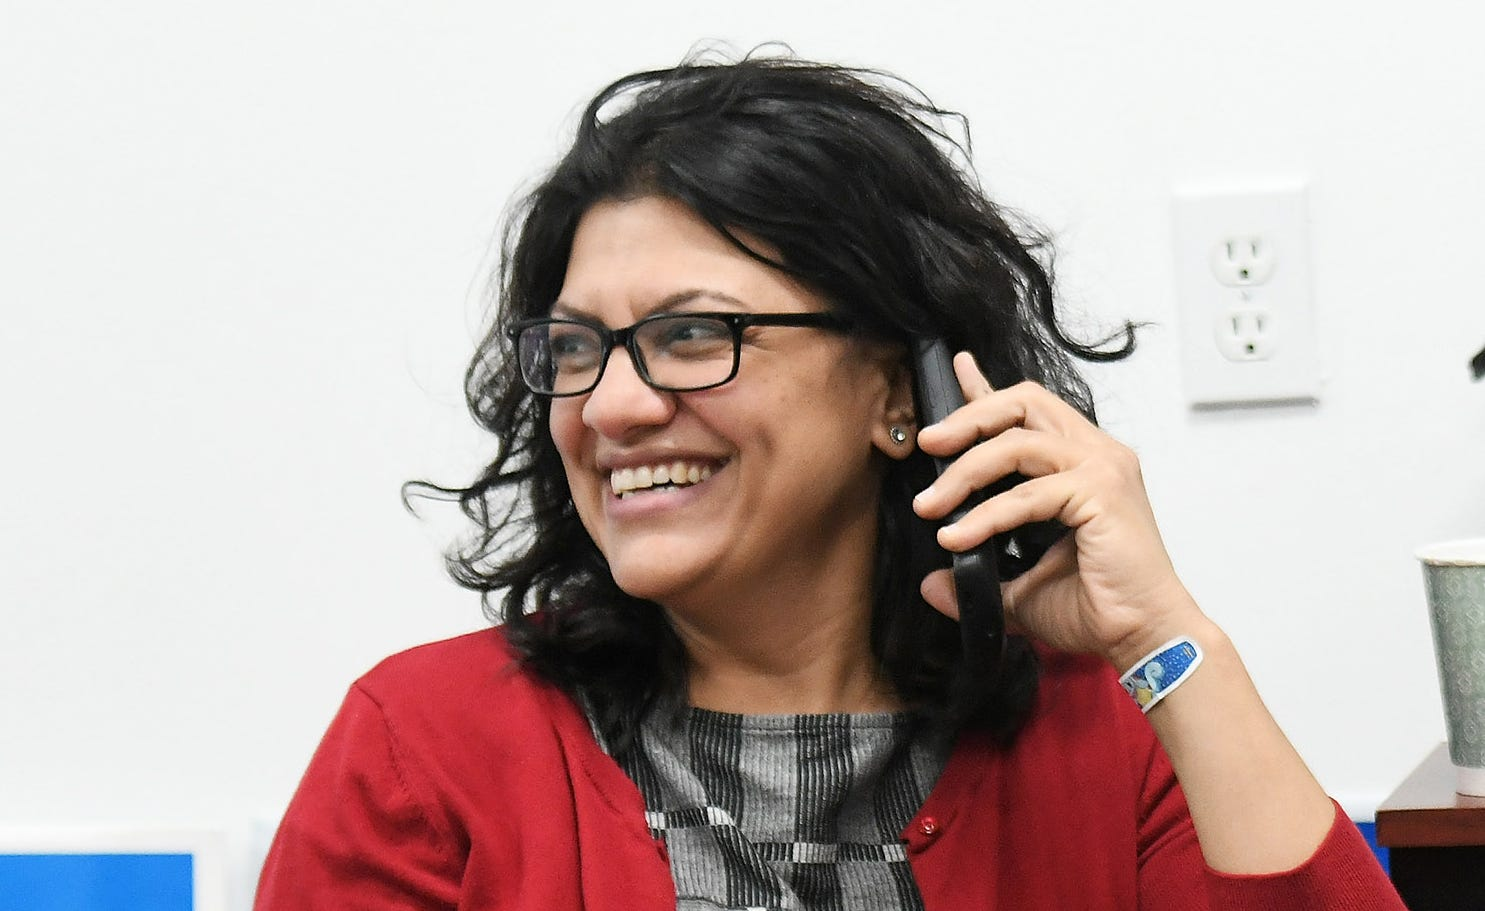 Rashida Tlaib, left, Democratic candidate for Congress in Michigan's 13th District, makes phone calls at the Democratic field office in Detroit on Monday.